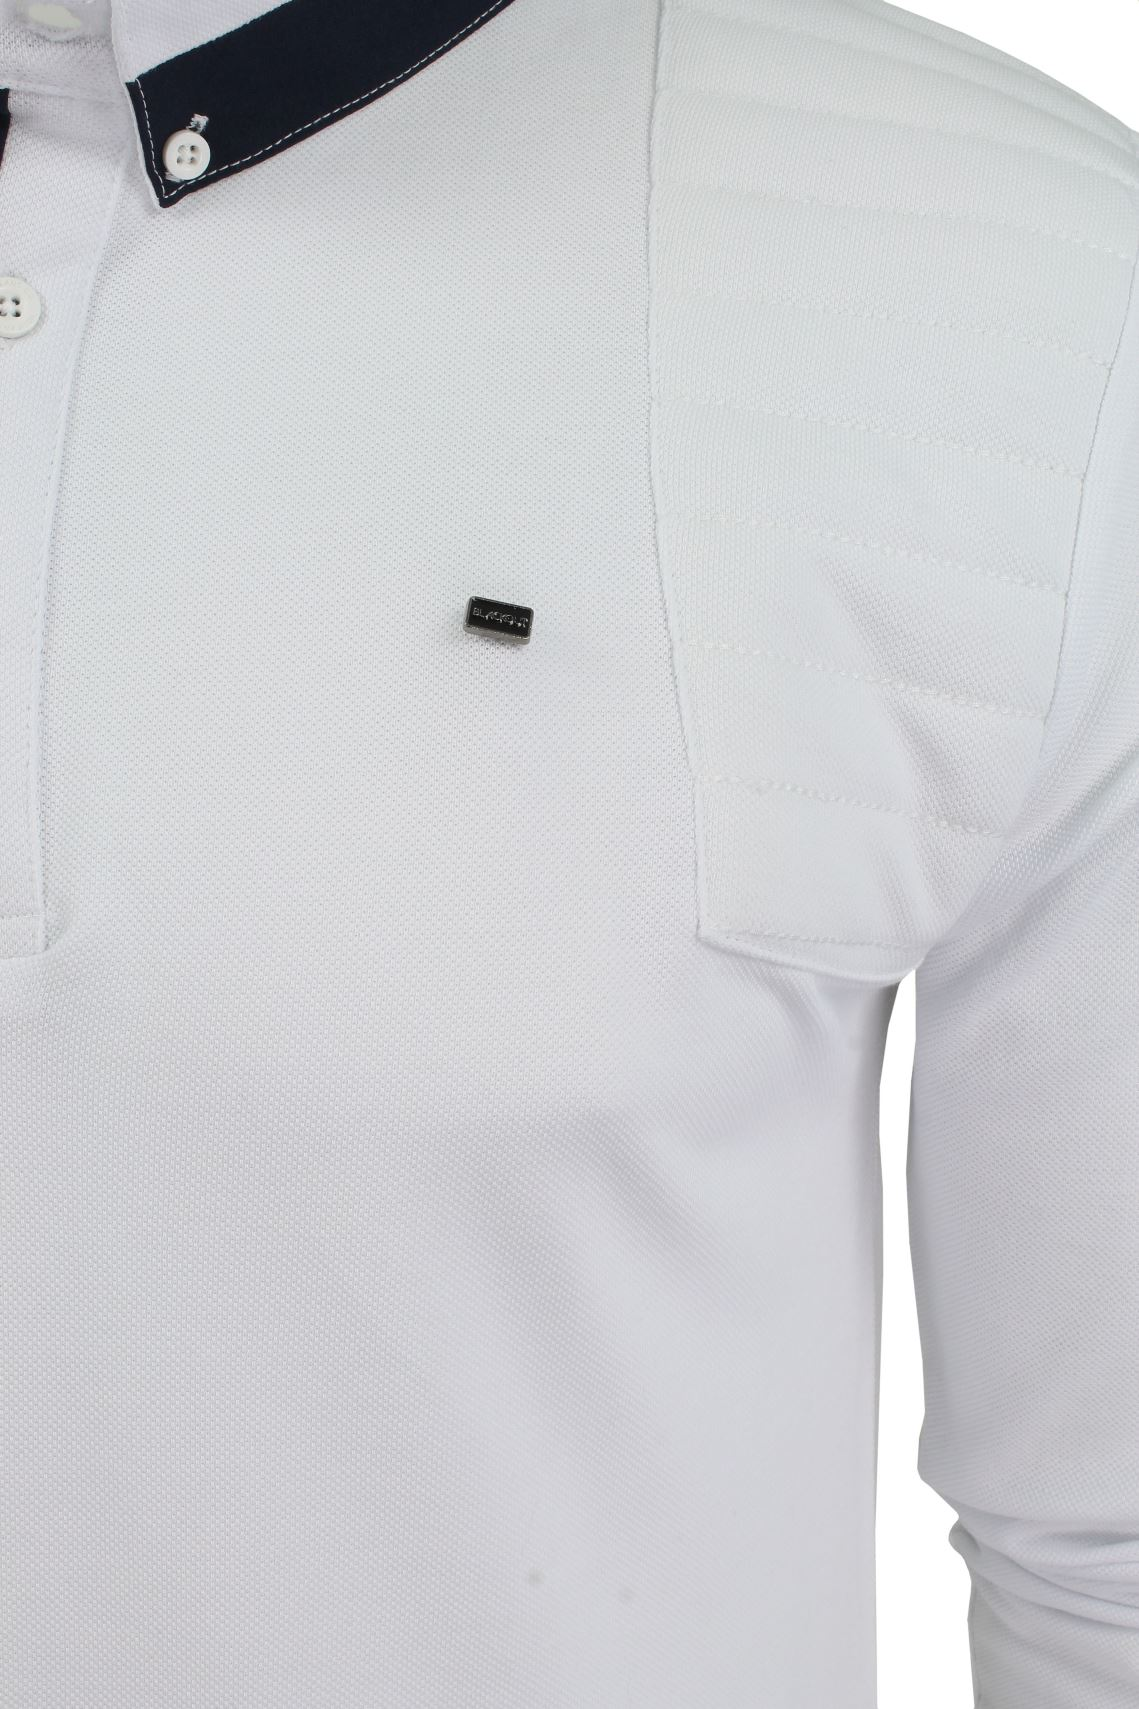 Mens-Short-Sleeved-Polo-Shirt-from-the-Blackout-Collection-by-Voi-Jeans thumbnail 6